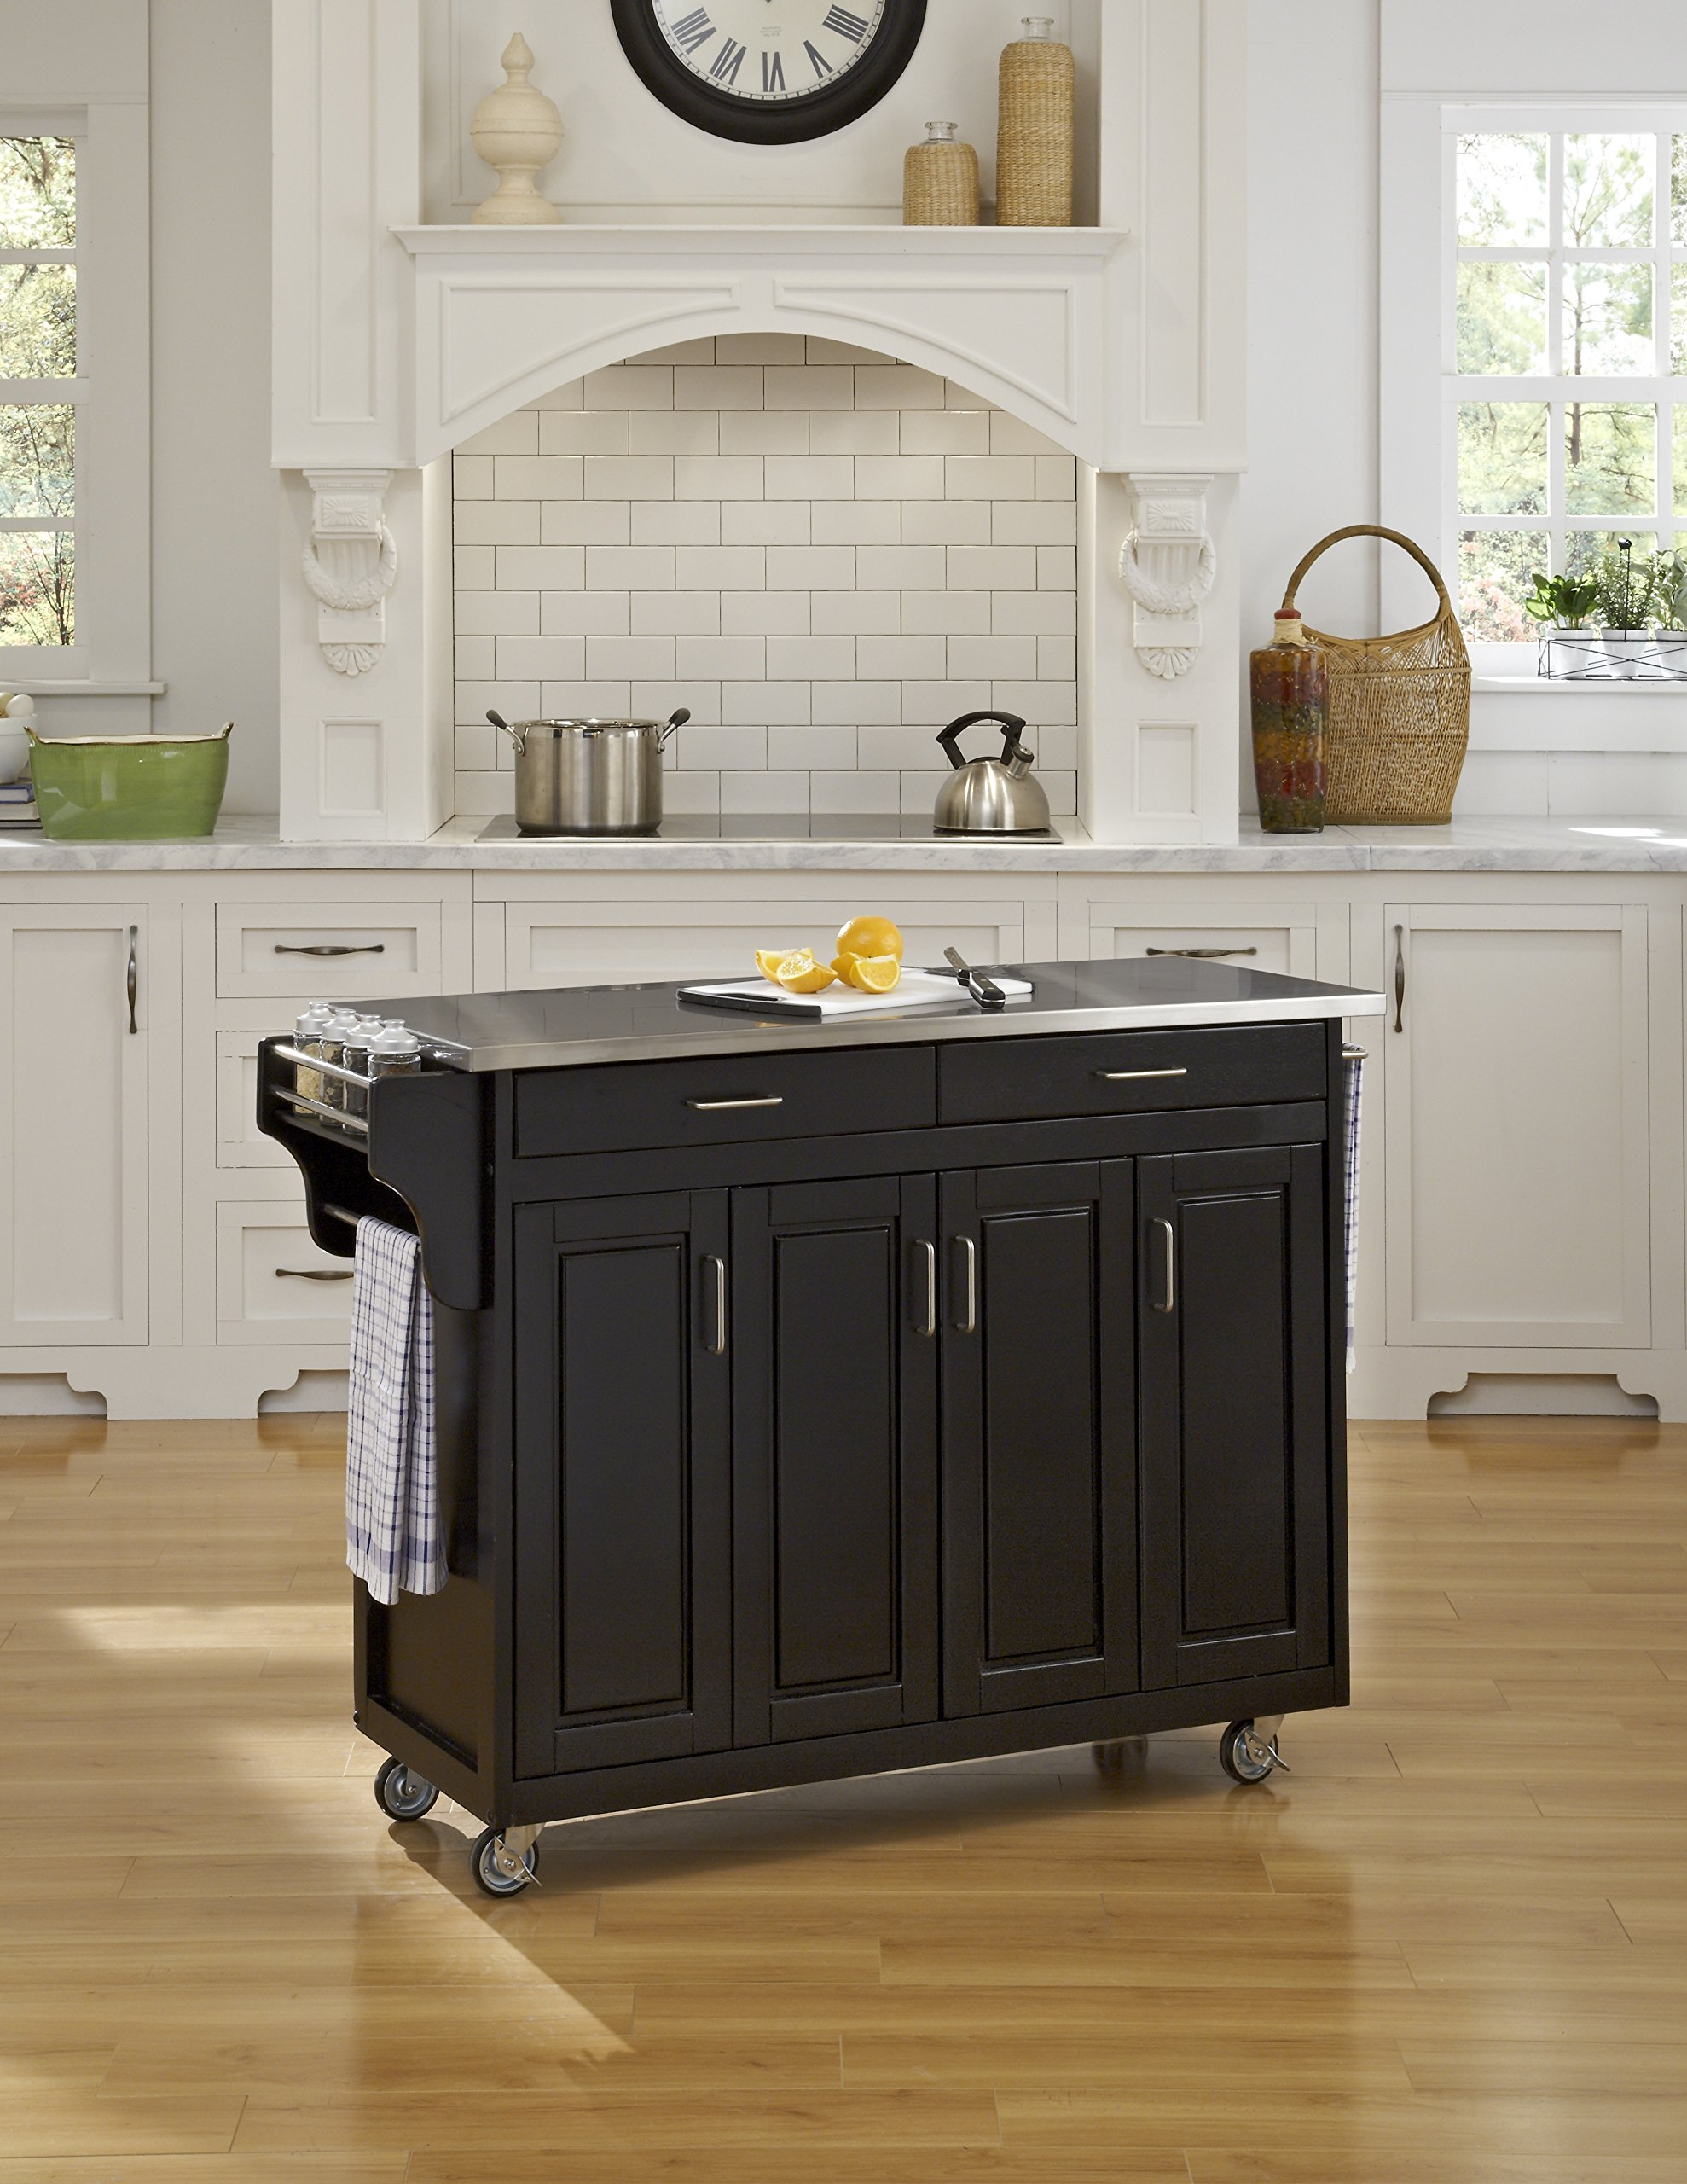 Home Styles 9200-1042 Create-a-Cart 9200 Series Cabinet Kitchen Cart with Stainless Steel Top, Black Finish